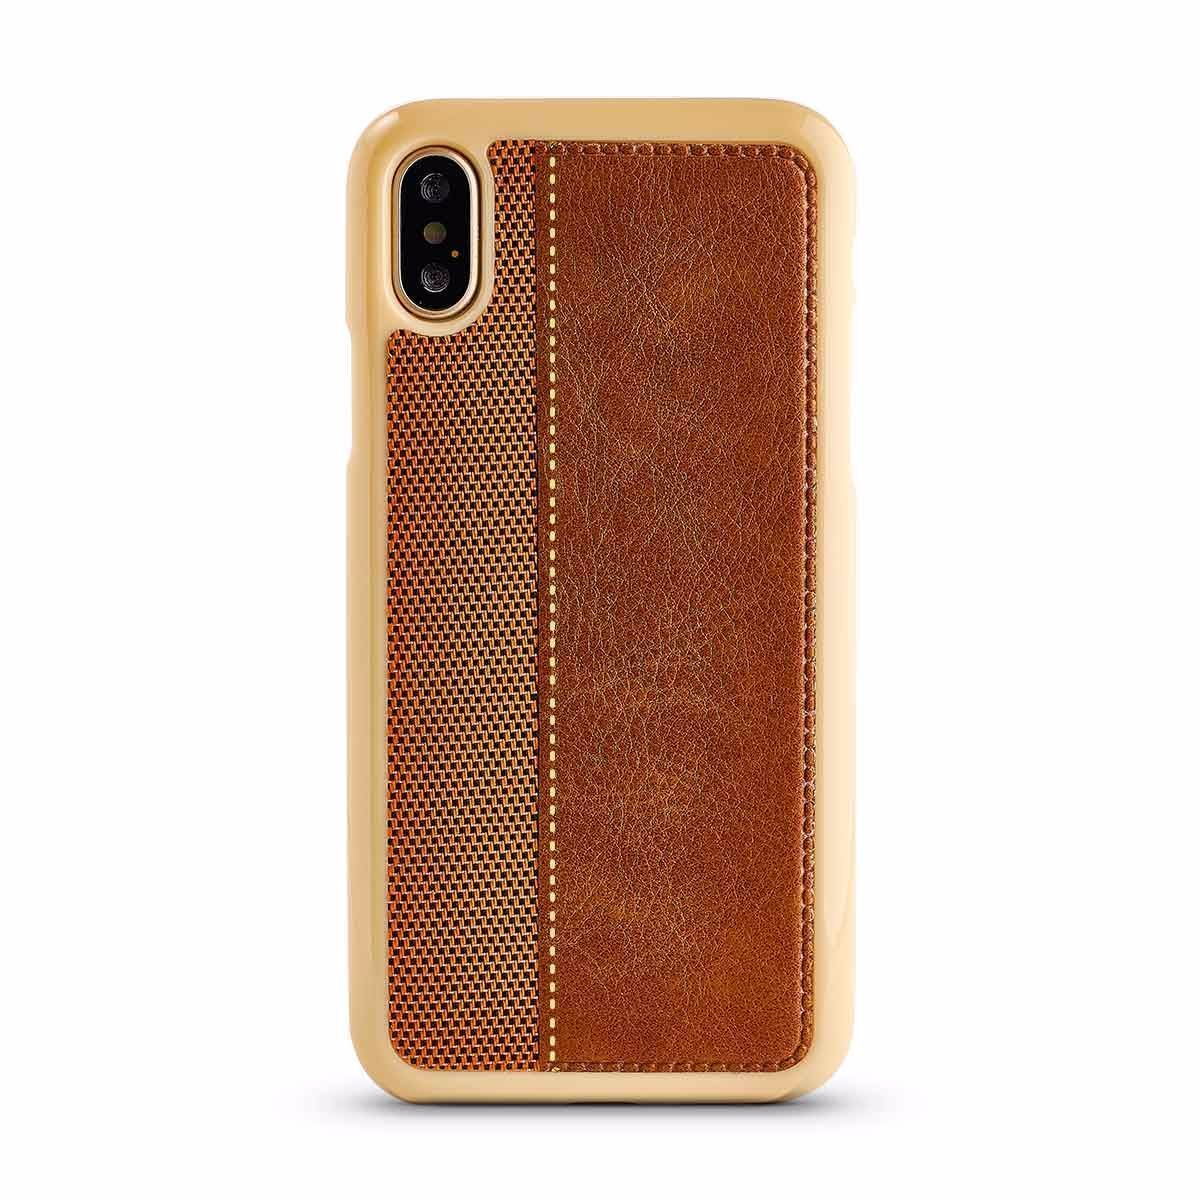 Ankaa Case for iPhone X, XS - Brown